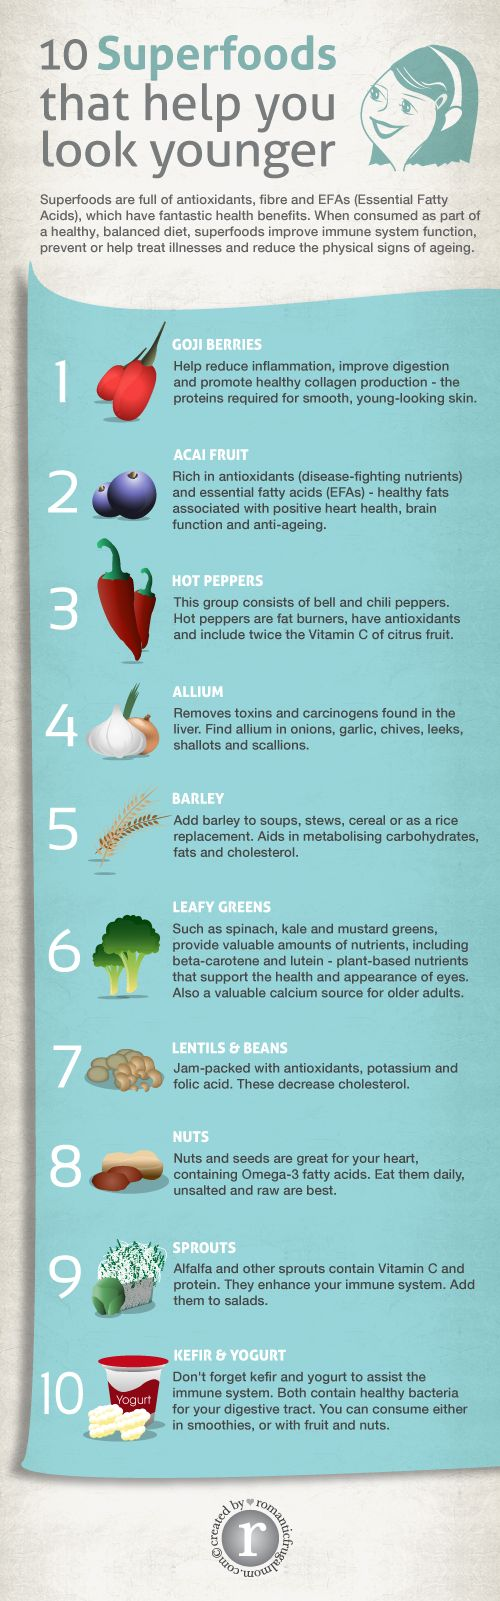 superfoods that help you look younger 2